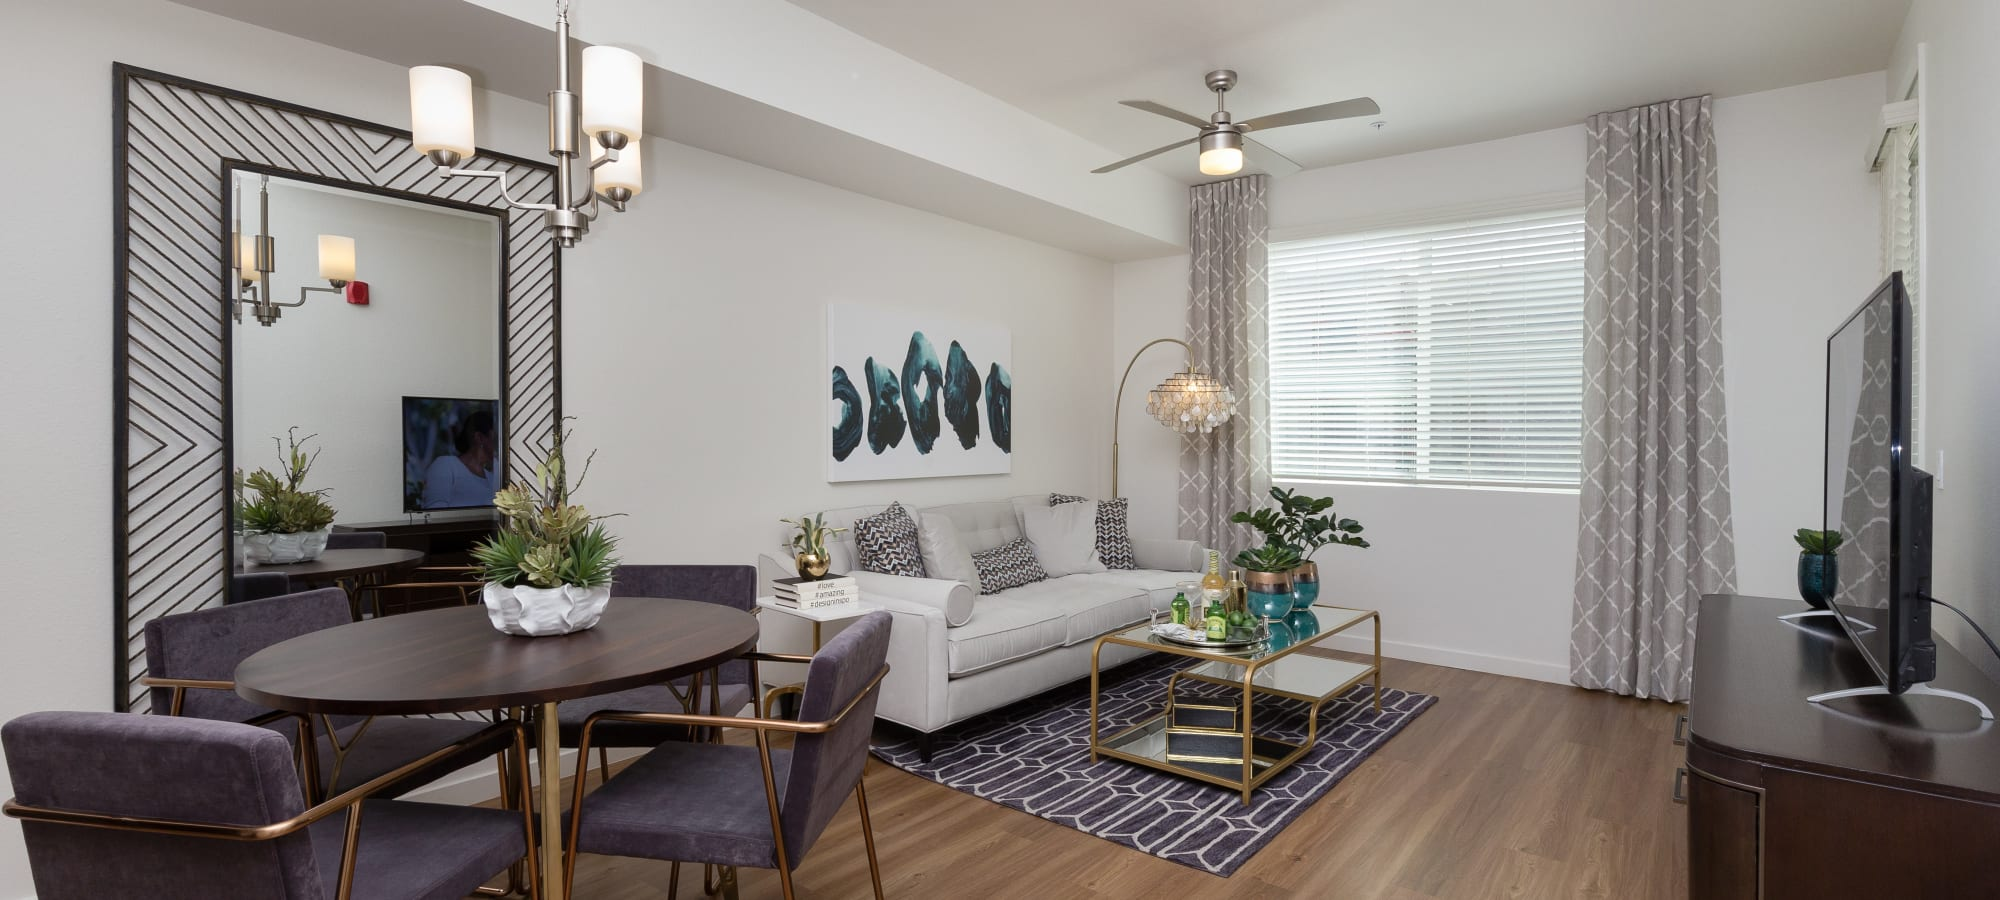 Spacious open floor plans at Park Place at Fountain Hills in Fountain Hills, Arizona